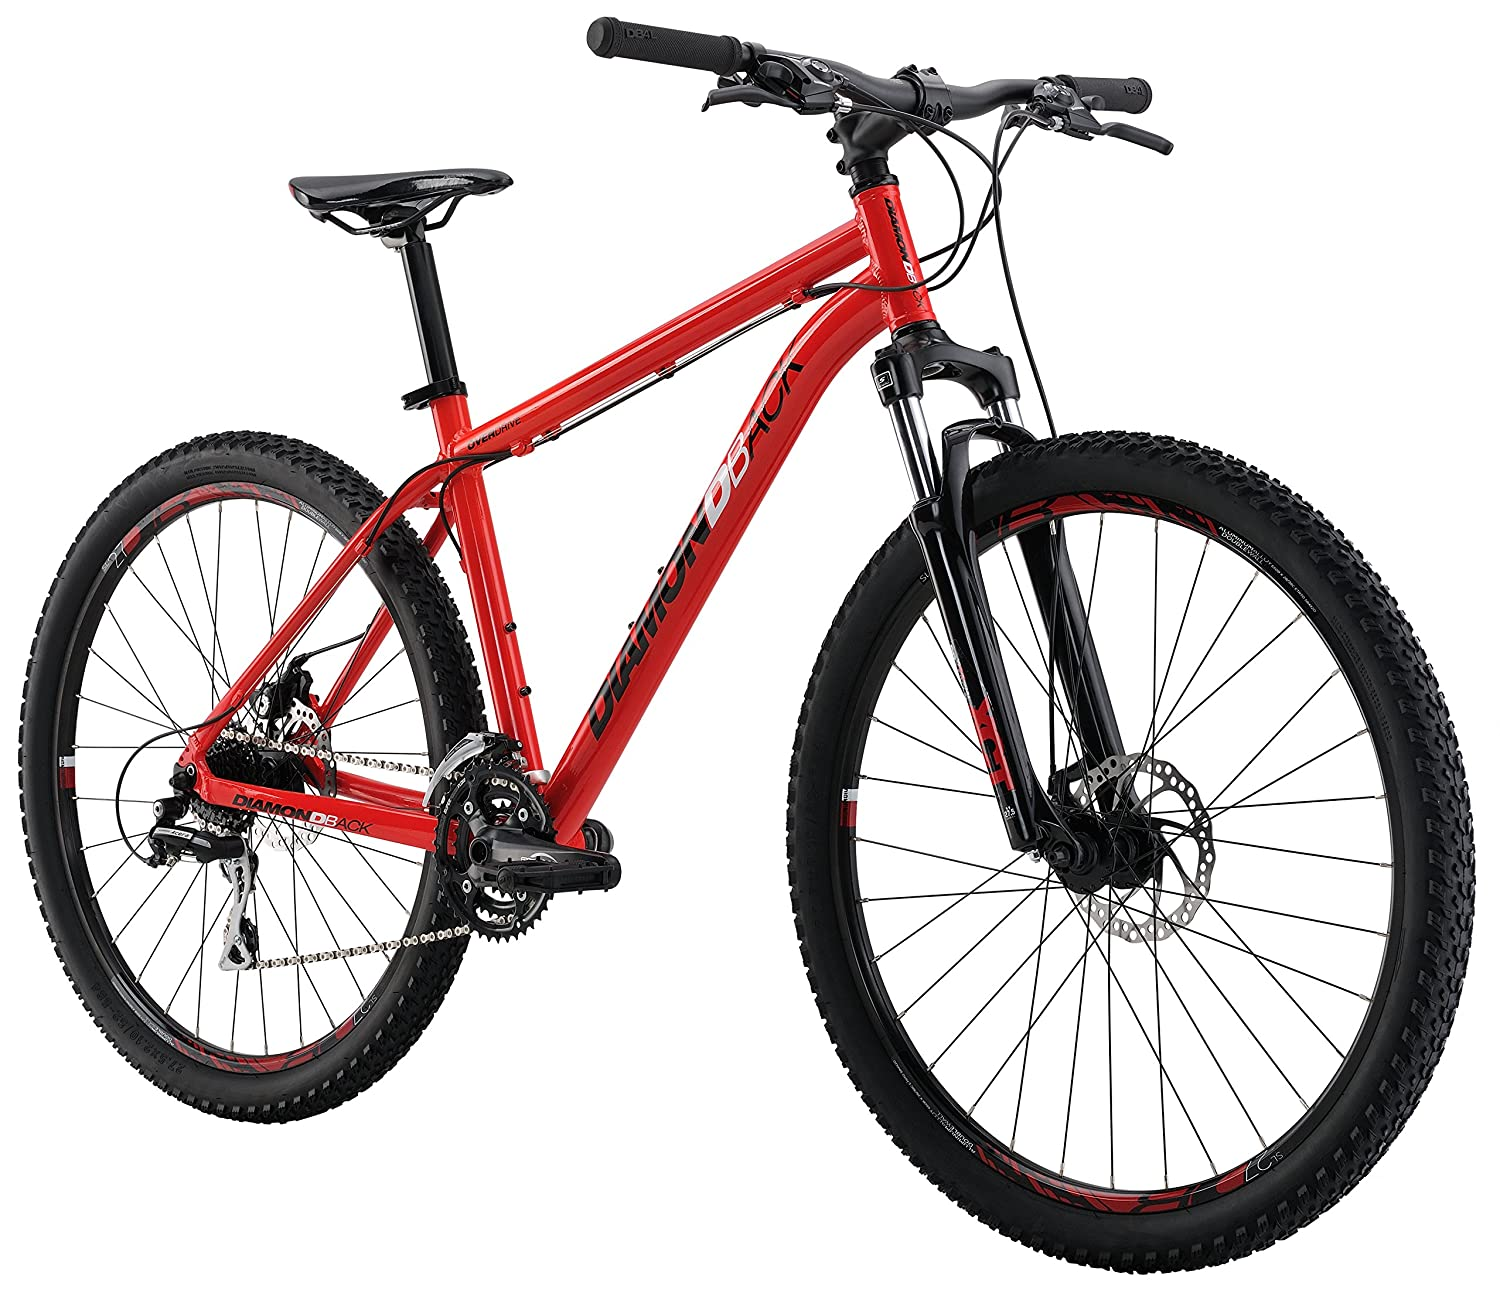 Diamondback Bicycles 2014 Overdrive Mountain Bike with 29-Inch Wheels Review 1